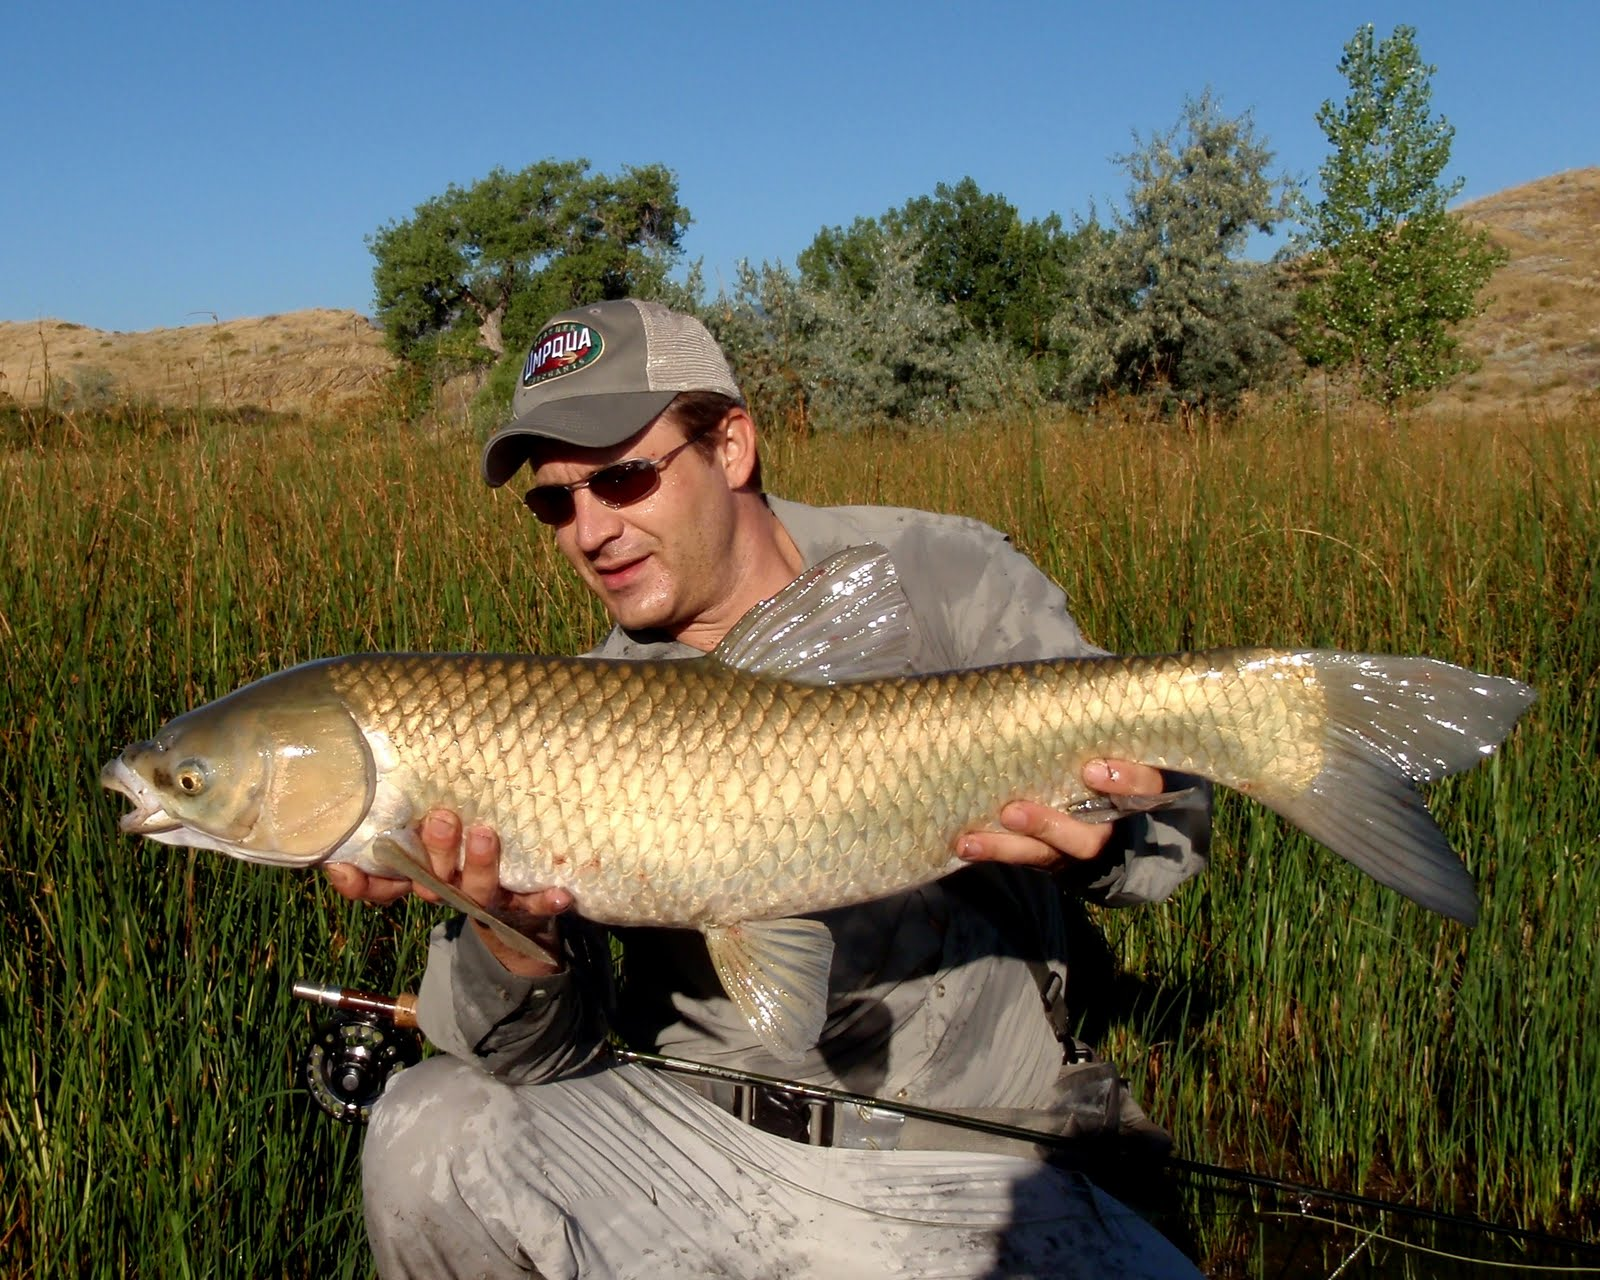 Colorado fly fishing reports fly fishing for carp directory for Fly fishing carp